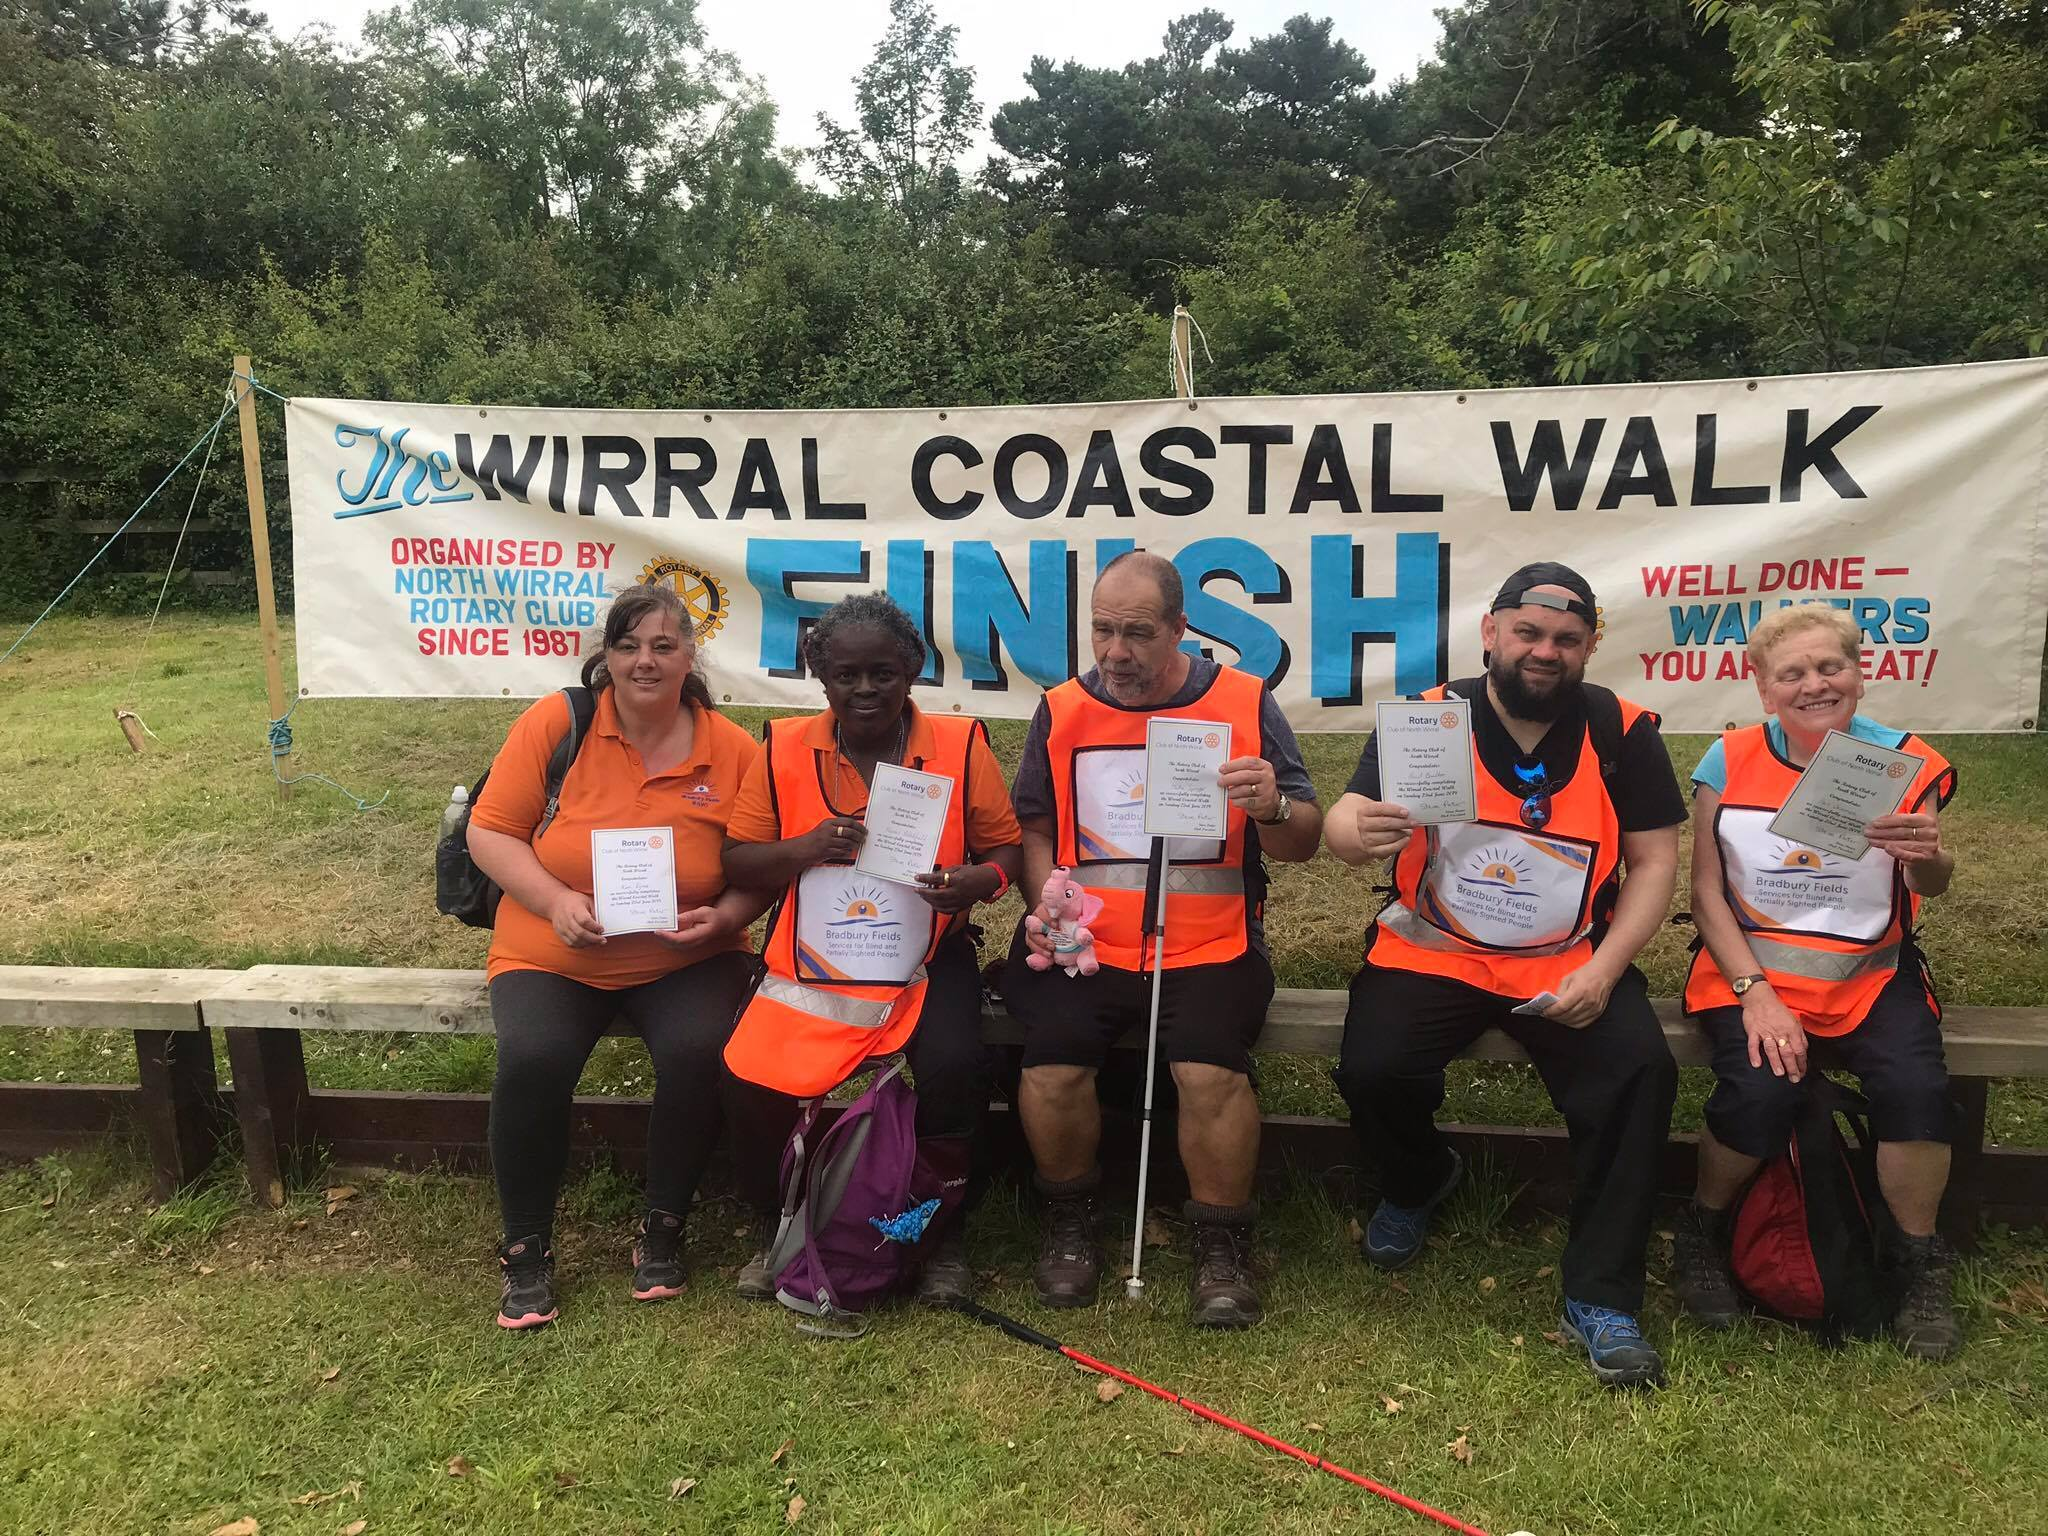 http://Five%20service%20users%20and%20volunteers%20sitting%20in%20front%20of%20a%20Wirral%20Coastal%20Walk%20banner%20showing%20off%20their%2010-mile%20certificates%20of%20completion.